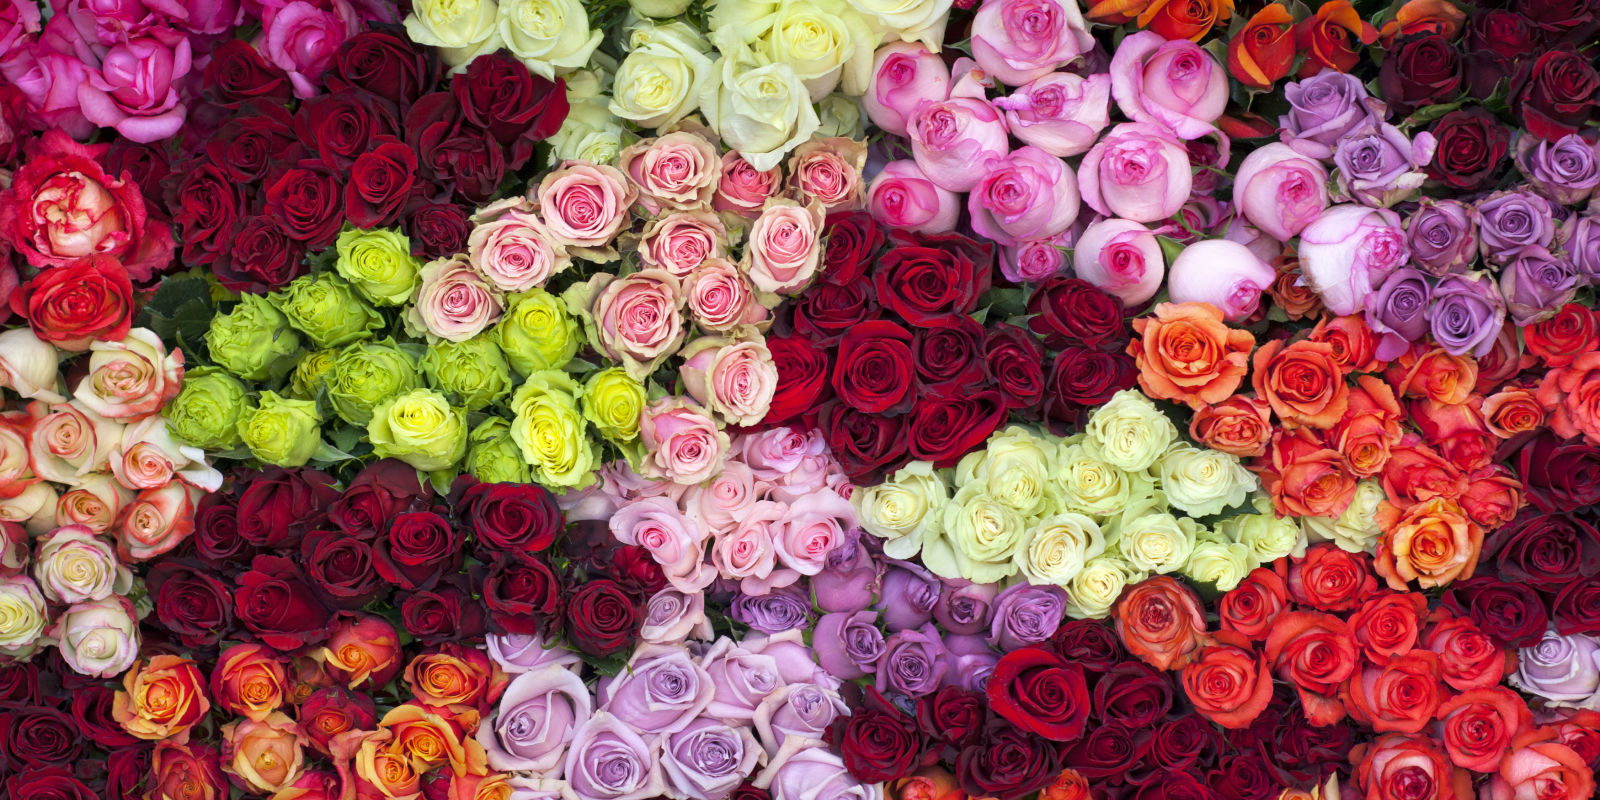 14 rose color meanings what do the colors of roses mean for 14 rose color meanings what do the colors of roses mean for valentines day buycottarizona